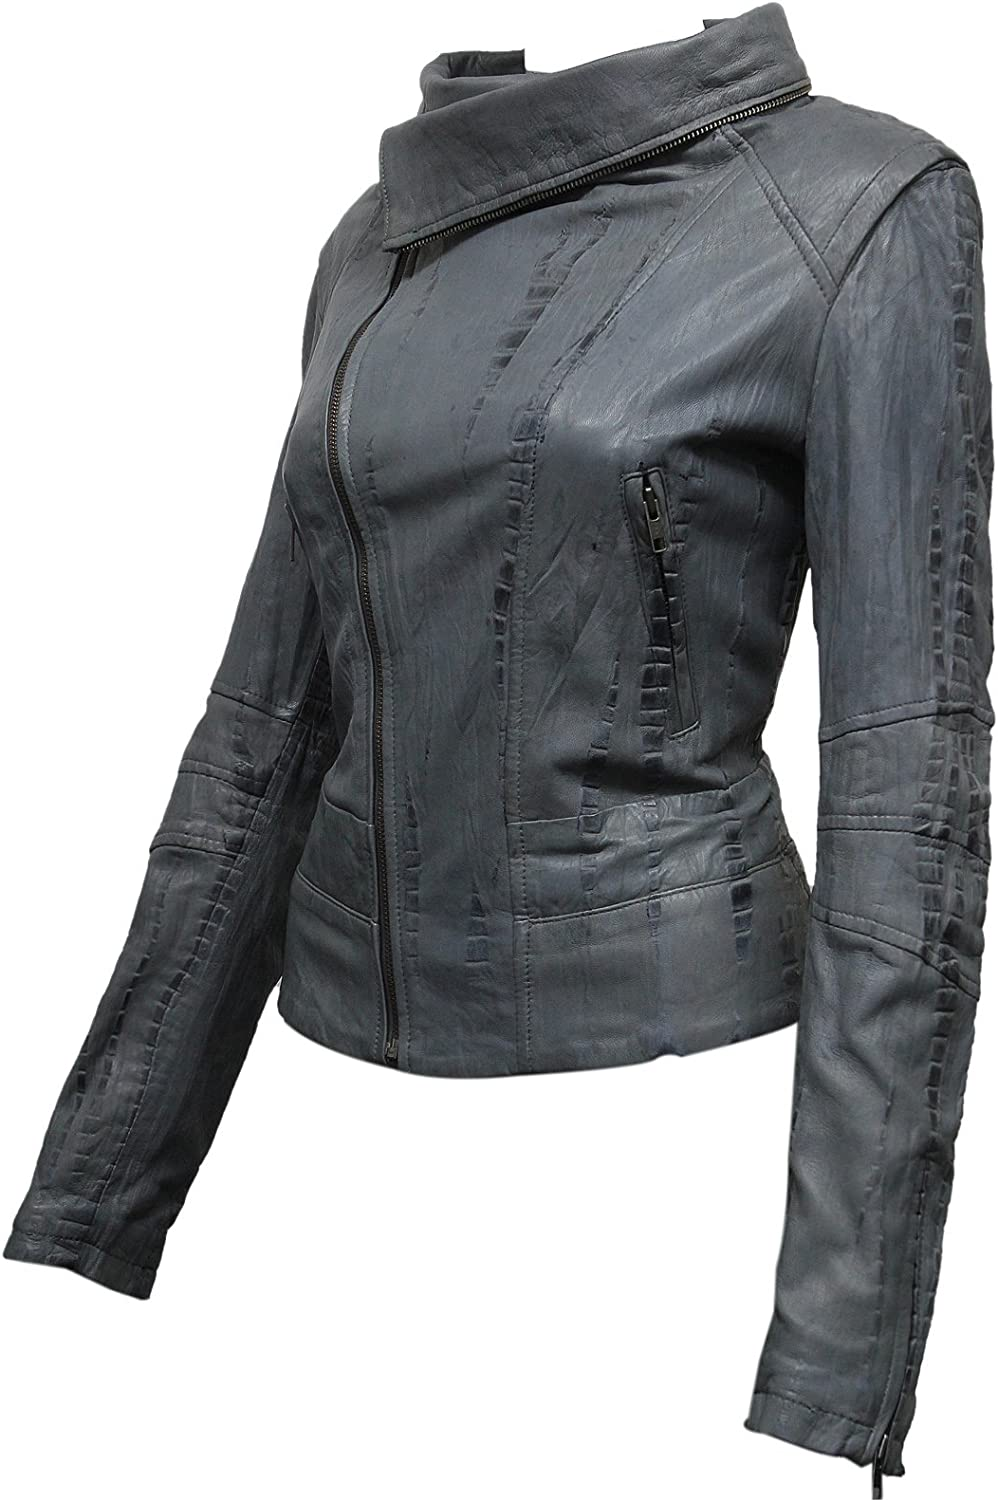 ABSY Ladies Womens Grey Leather Biker Jacket from Real Sheep Leather with Washed Waxed Effect Asymmettric BNWT